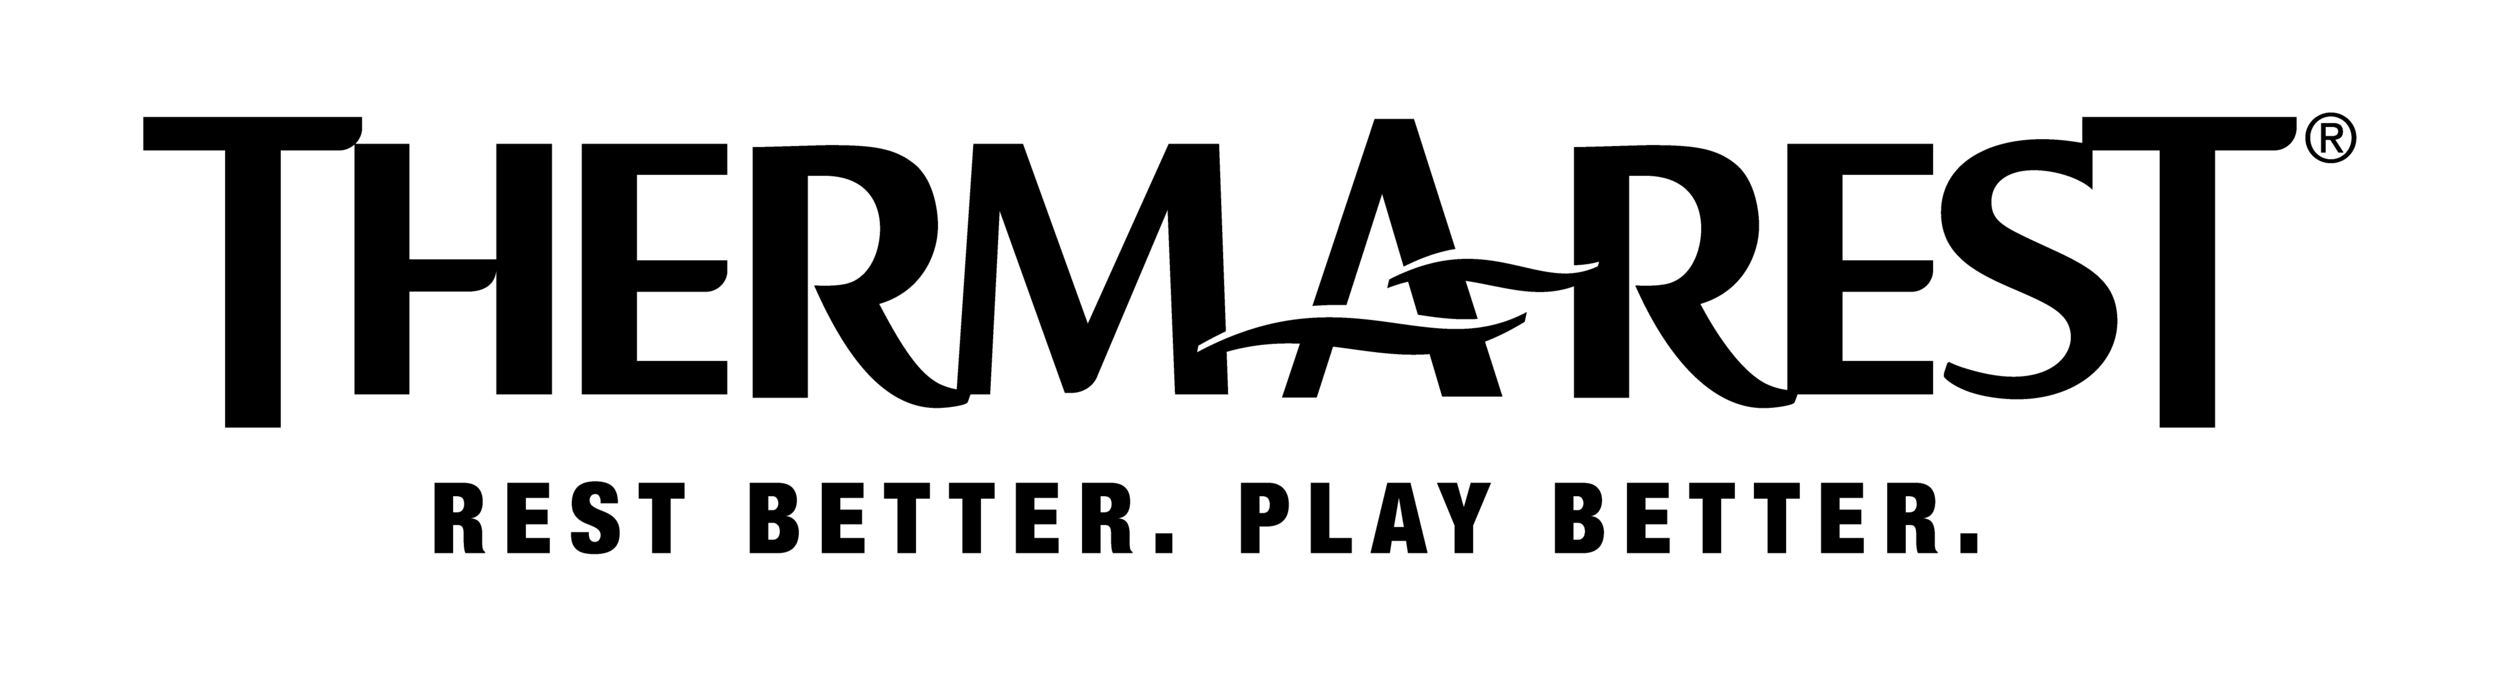 thermarest-logo-blk.png